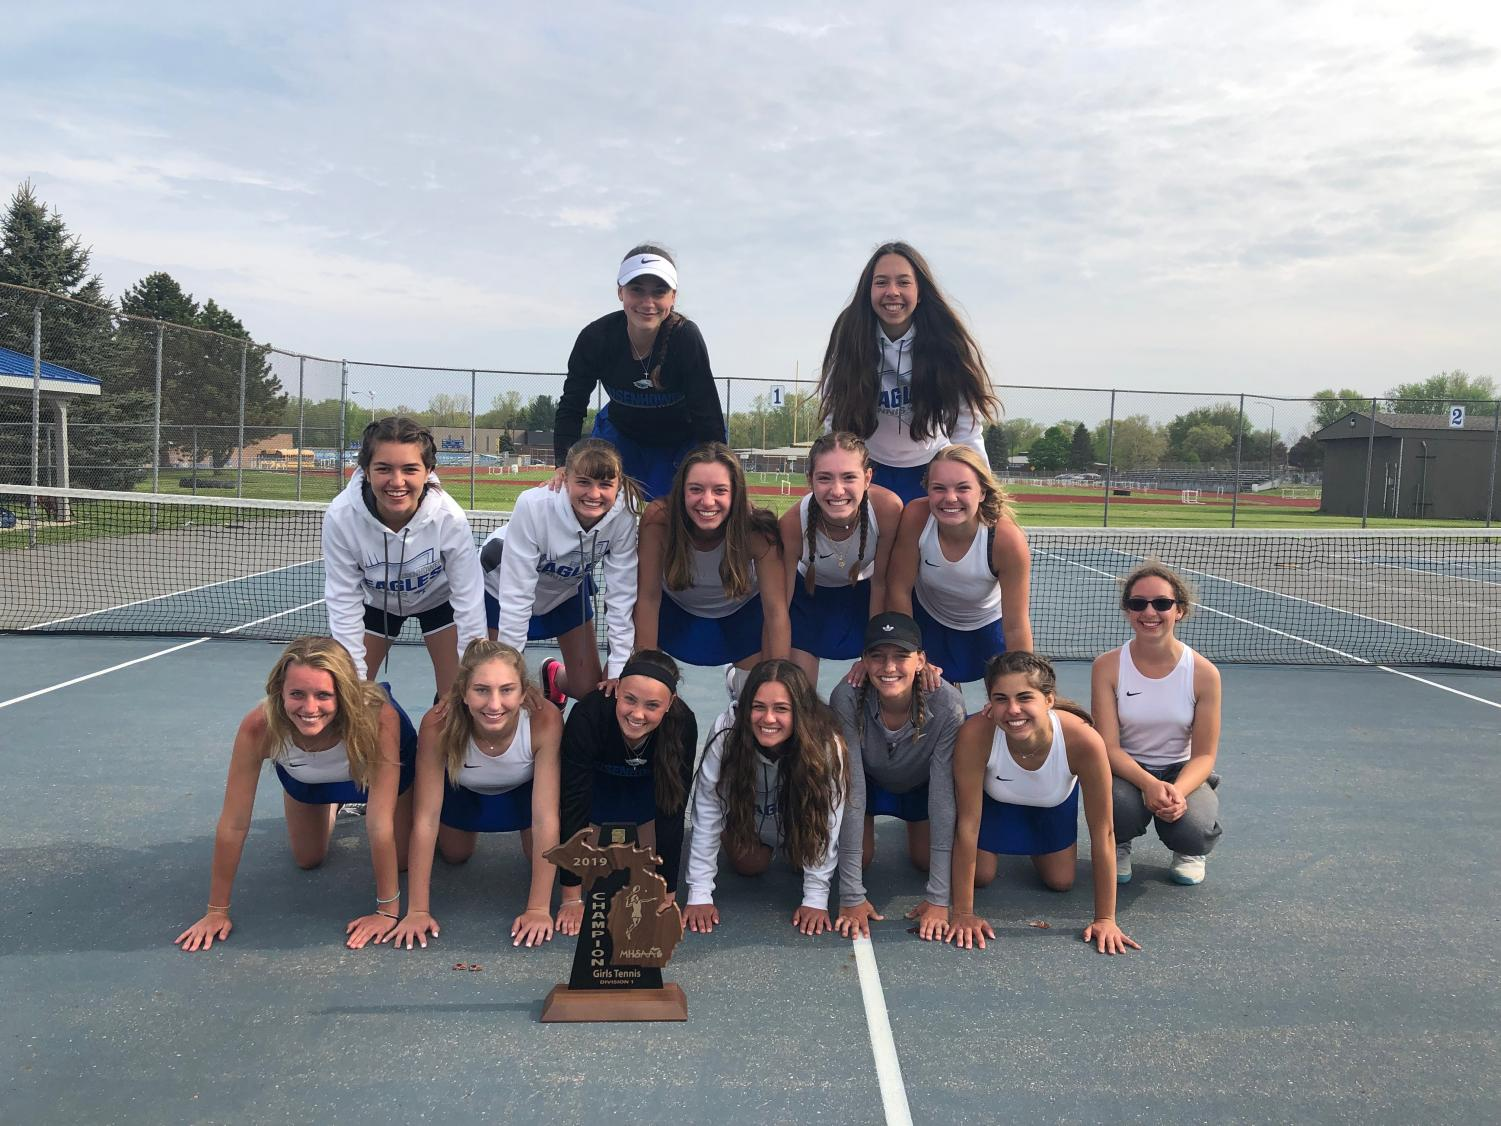 Womens varsity tennis team happy after winning their regional and advancing to States.